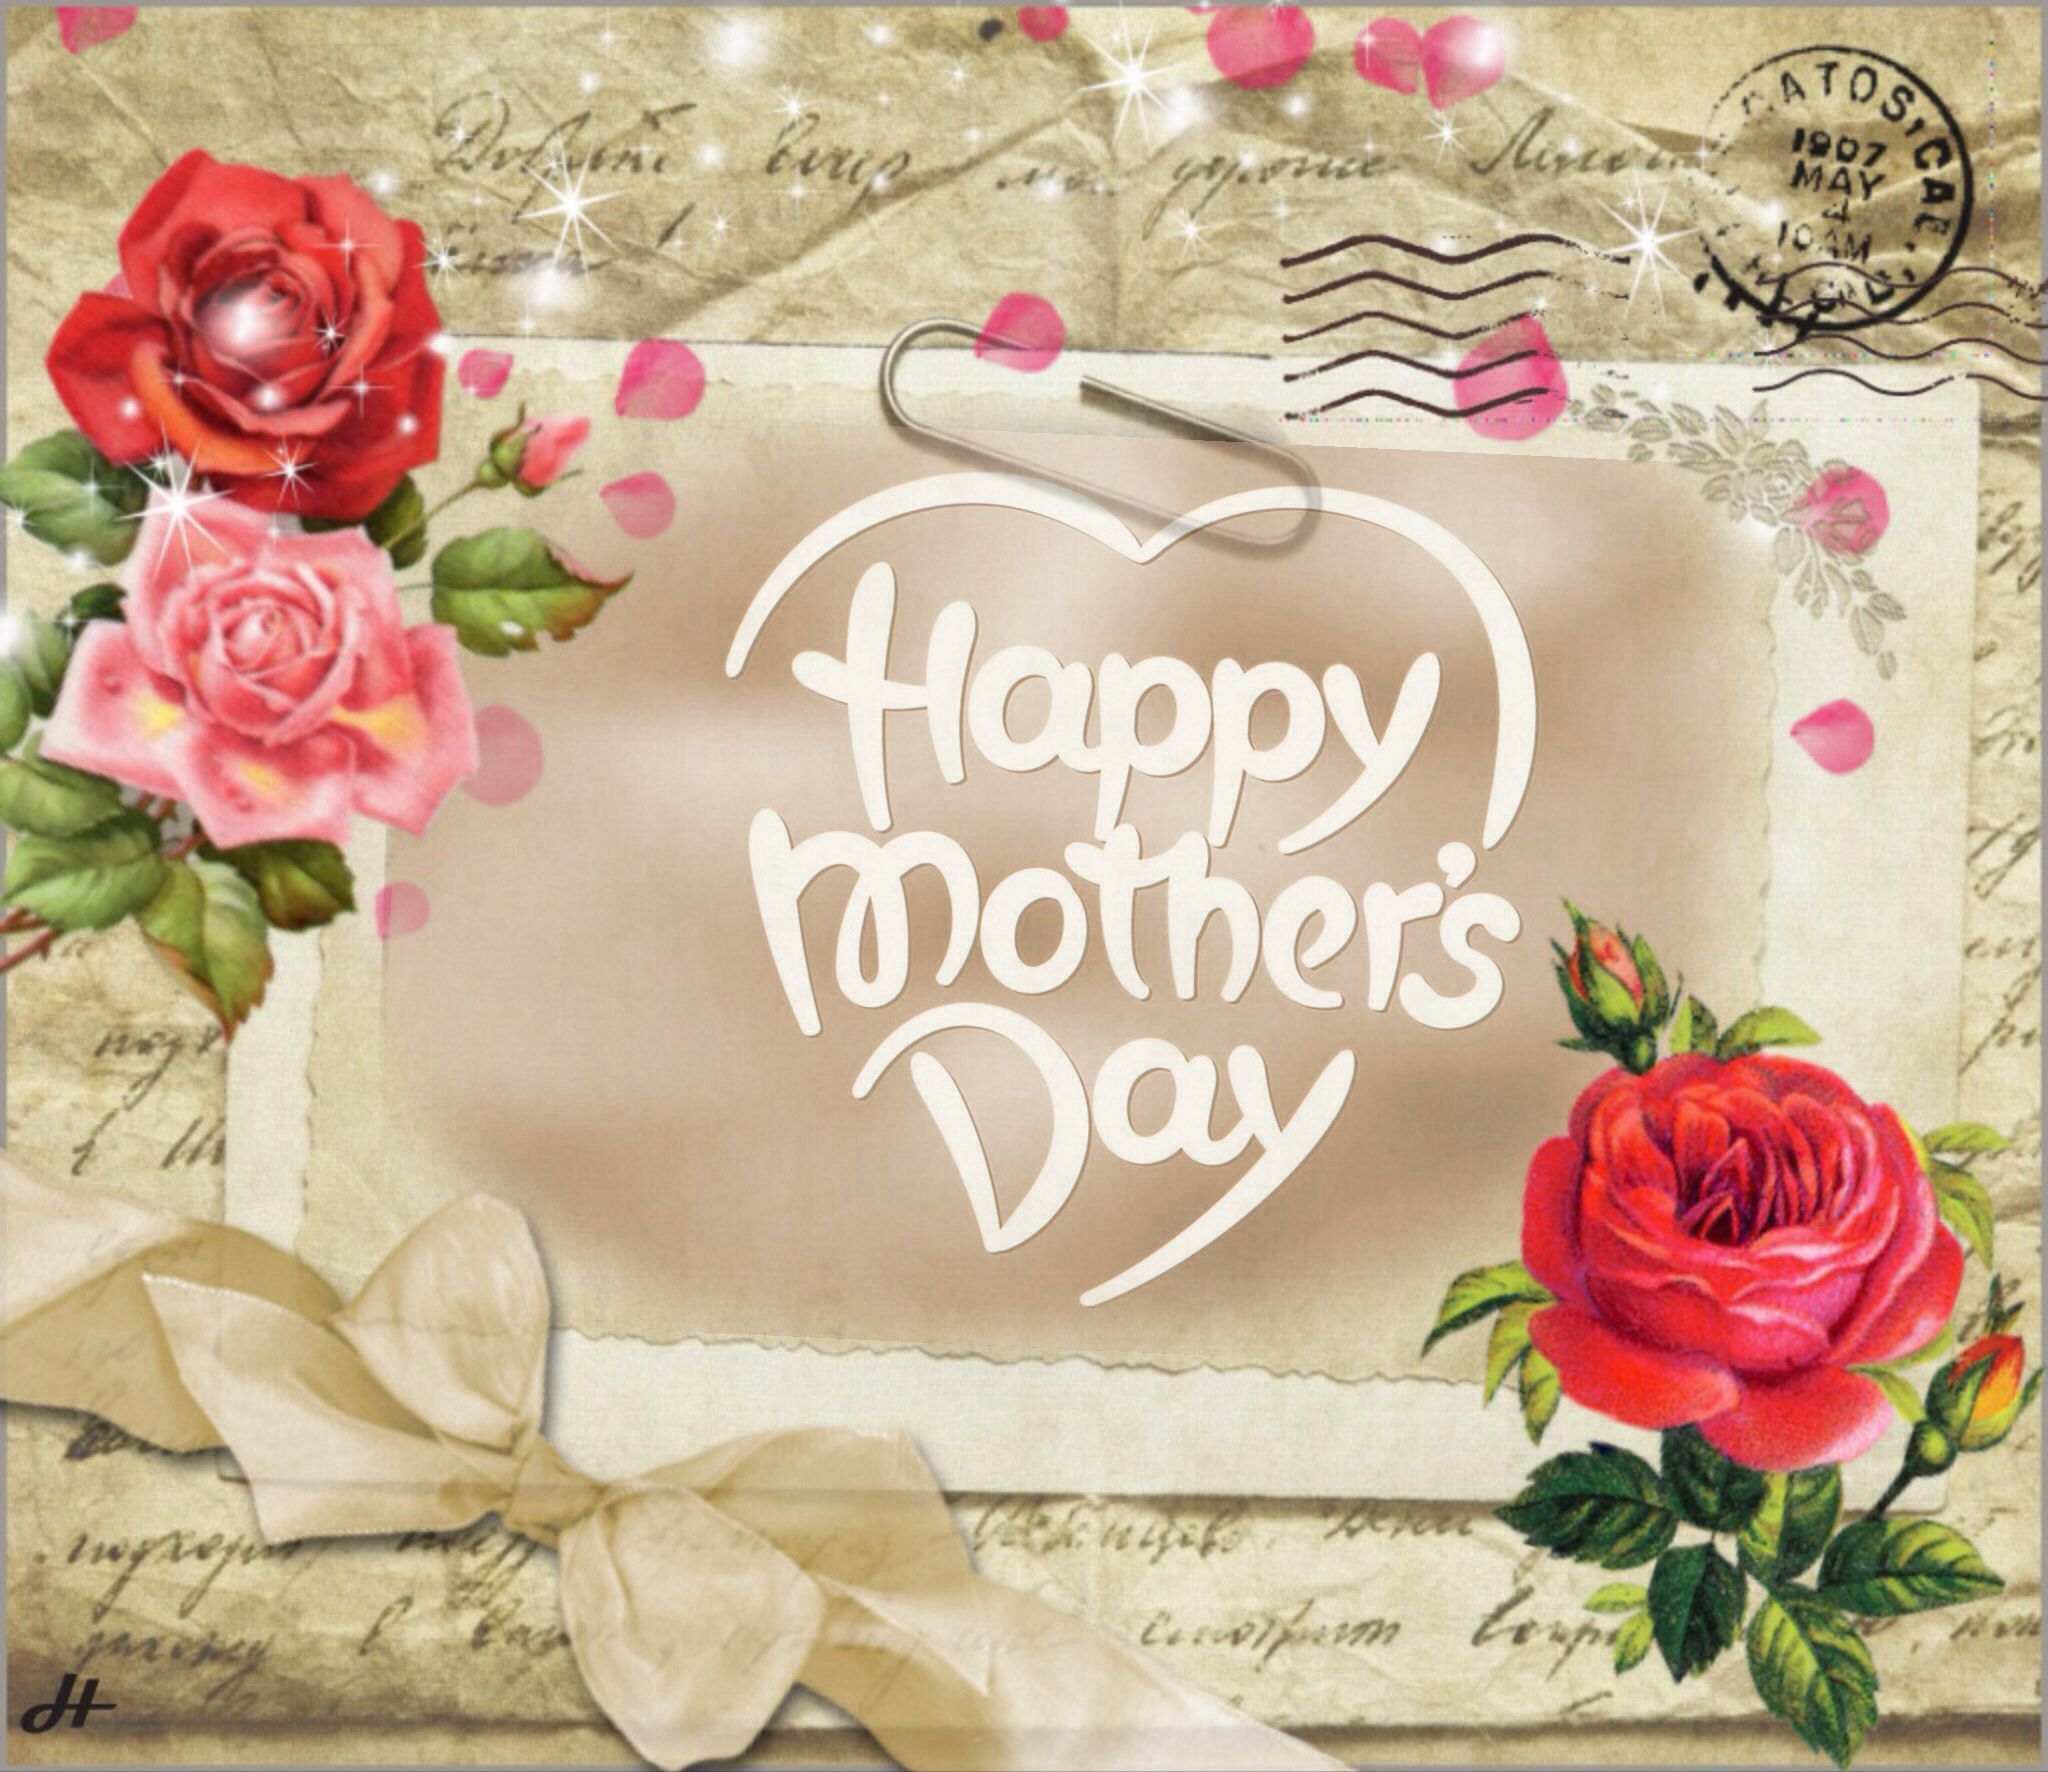 Happy mothers dayMade by Anita and imikimi   Selfmade picture,s with ...